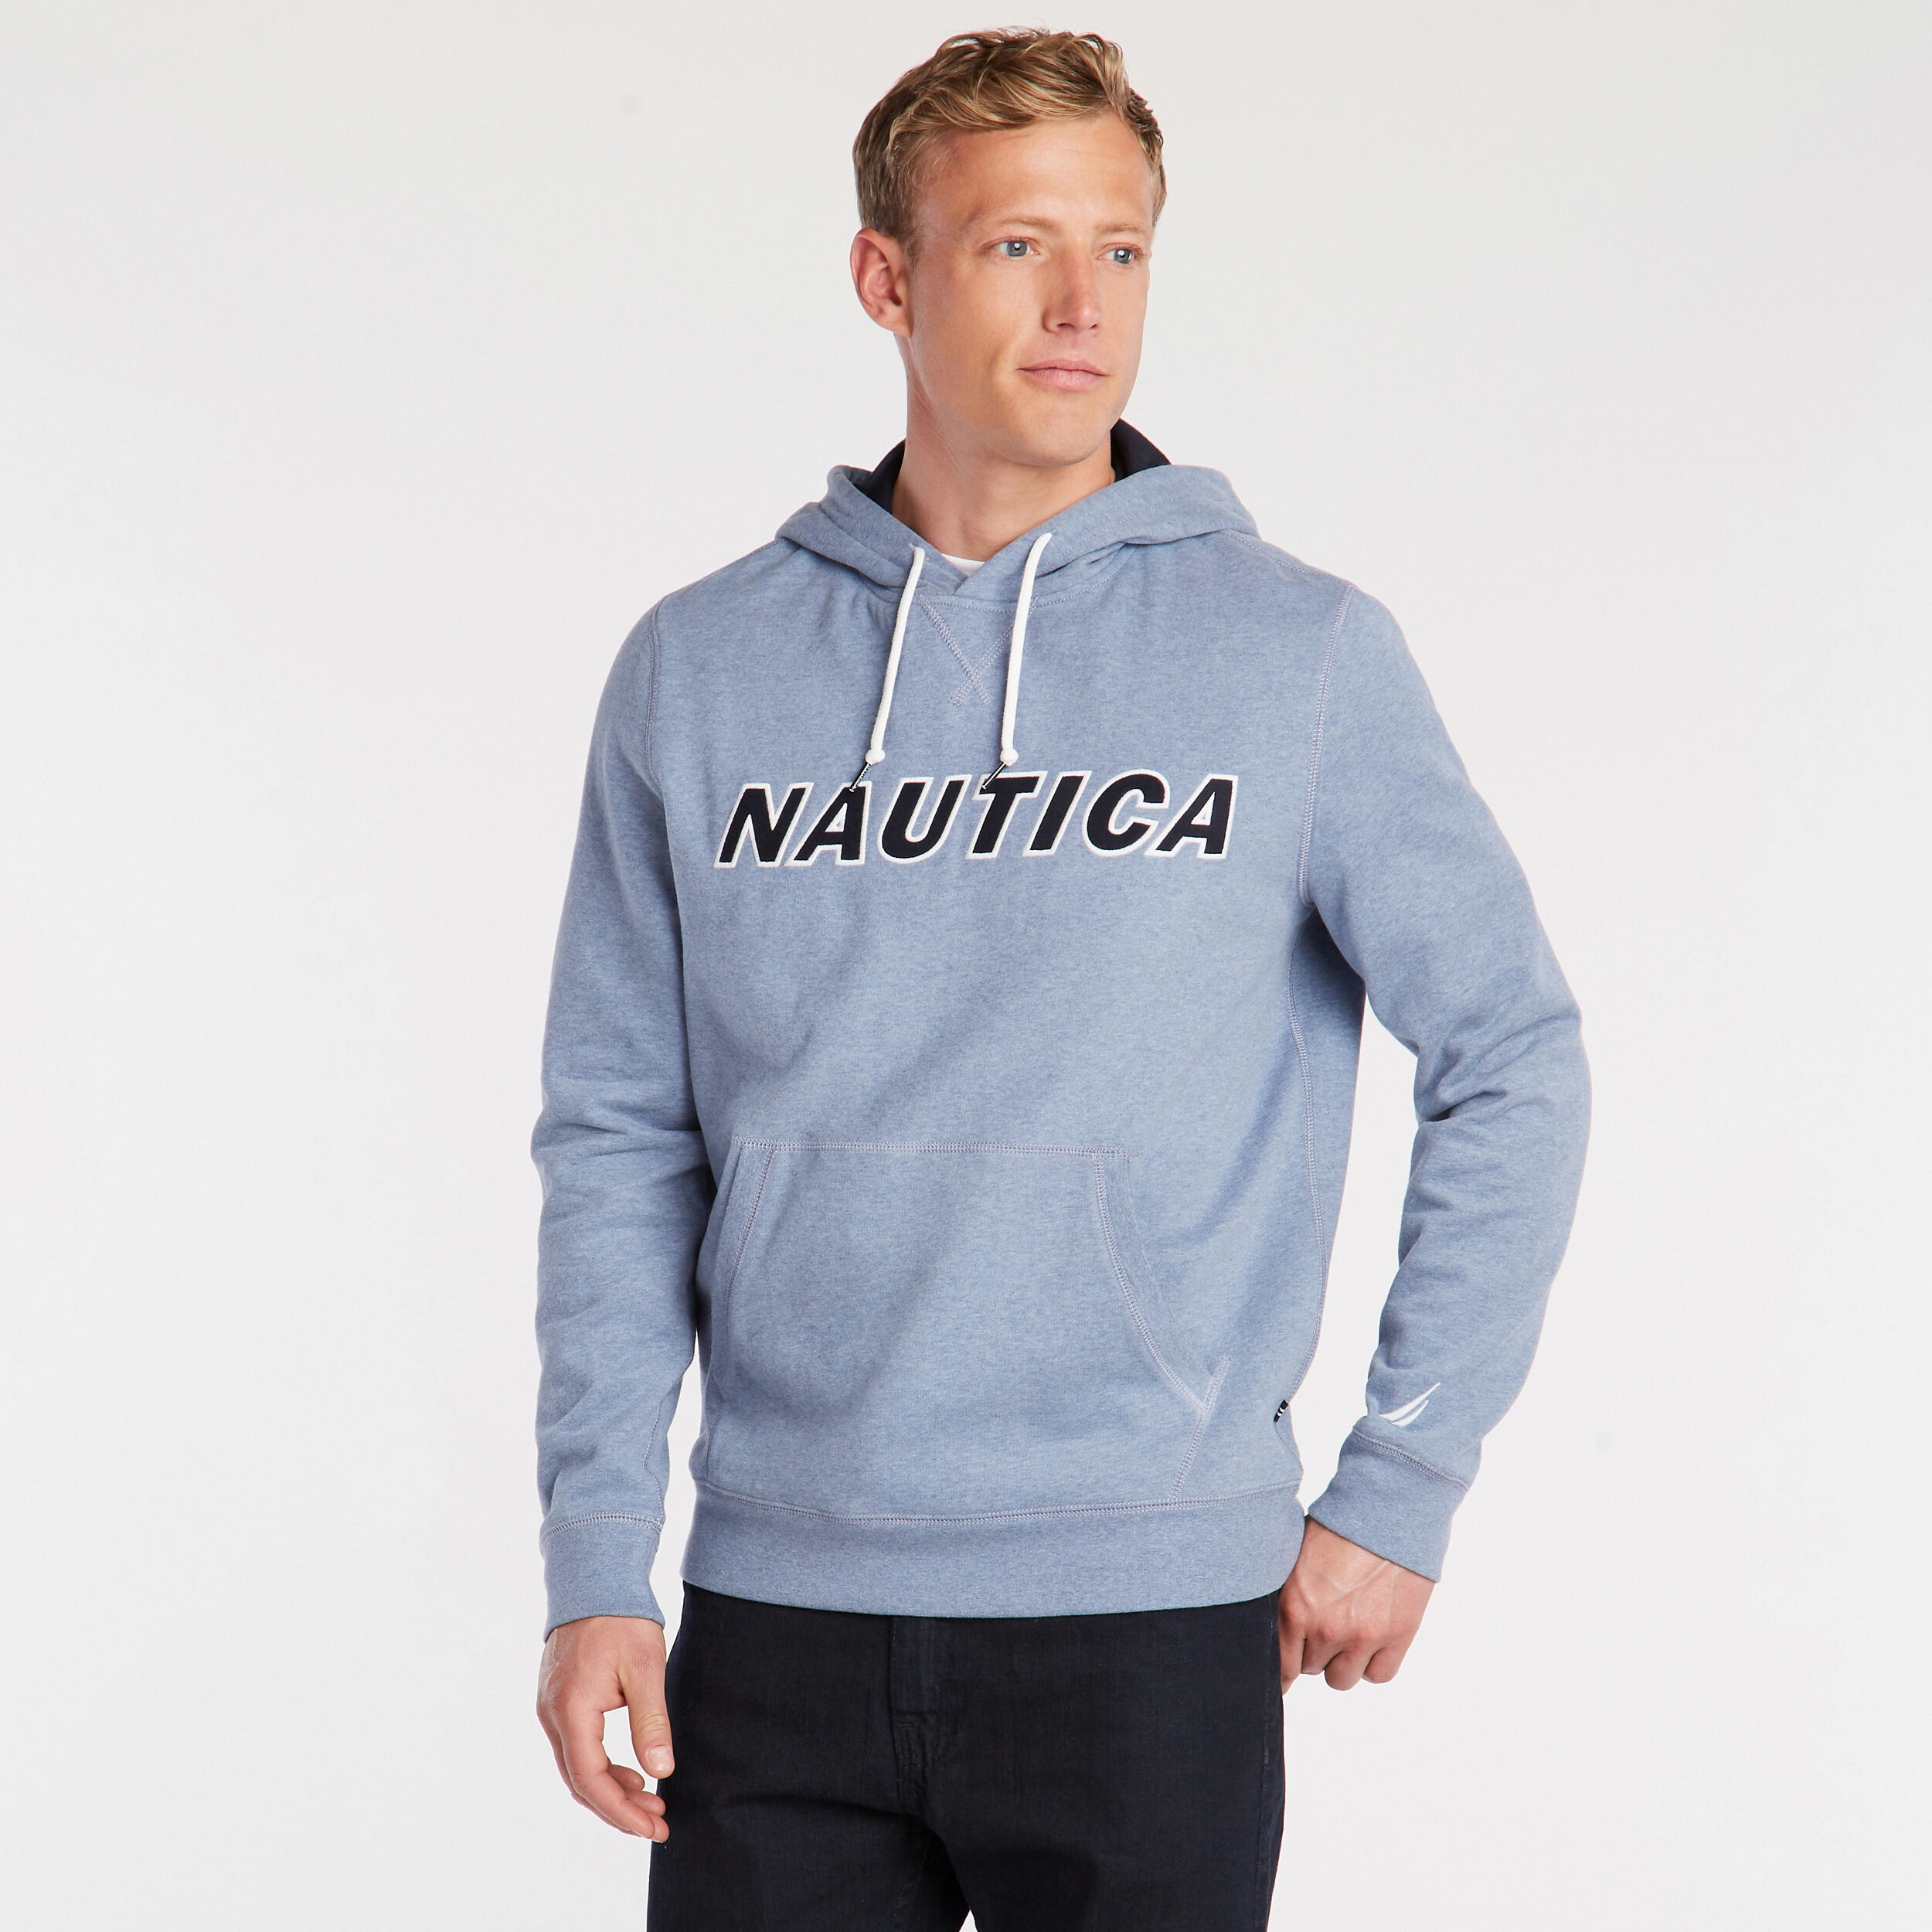 Nautica Men Signature Logo Sweatshirt Long Sleeve Pullover Navy Blue Heather 2XL